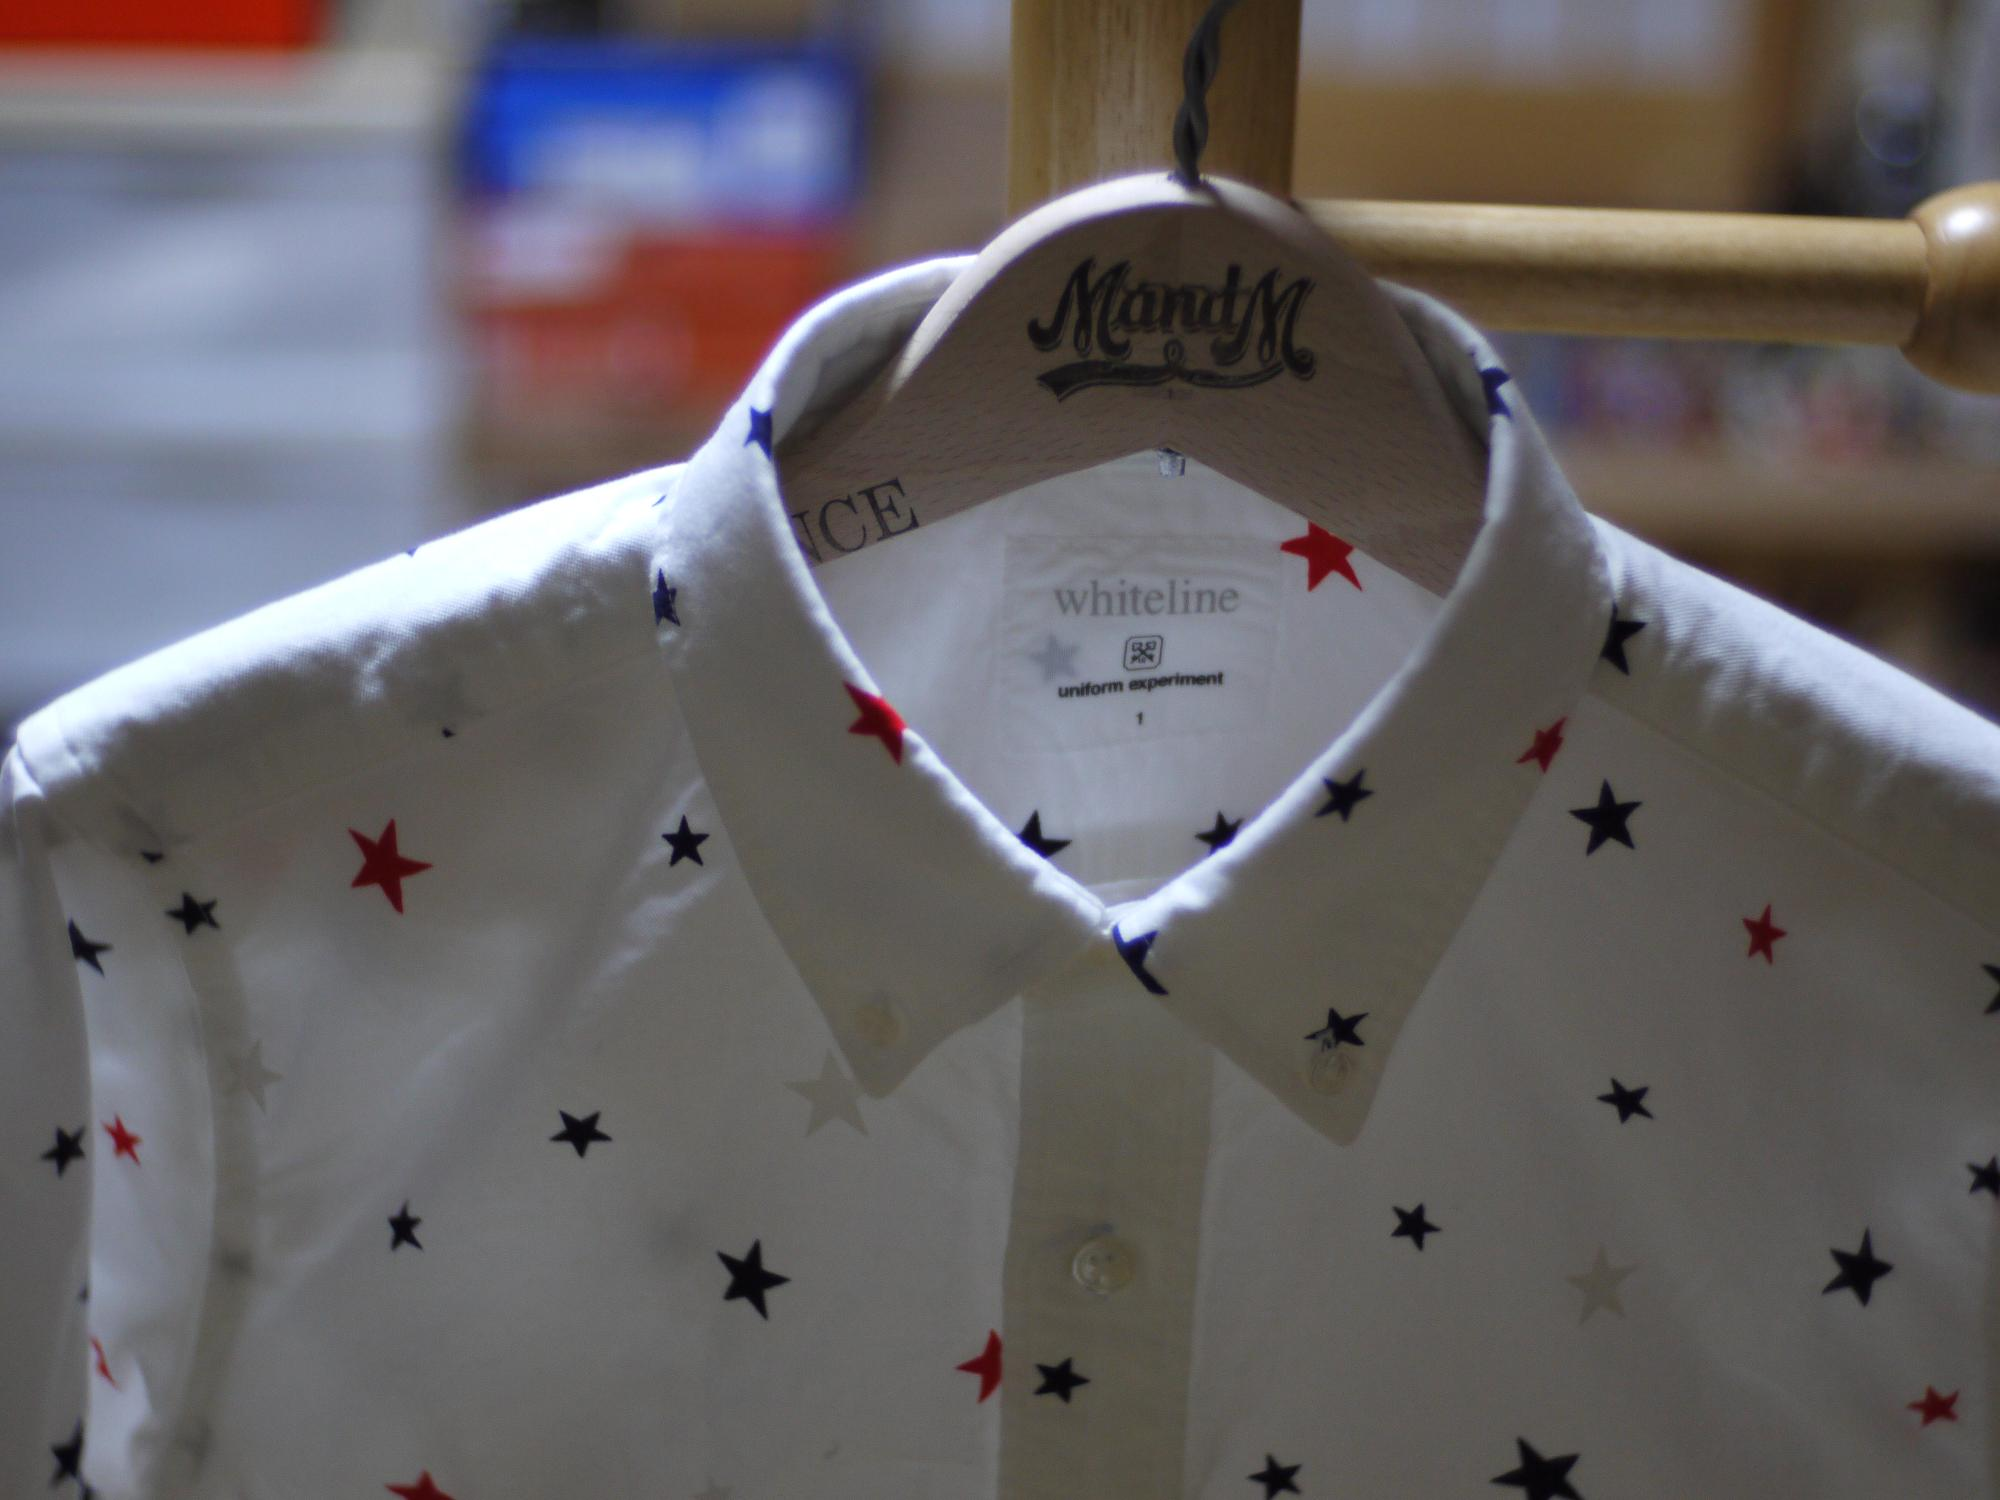 uniform experiment LS STAR PATTERN B.D SHIRT | Flickr - Photo Sharing!